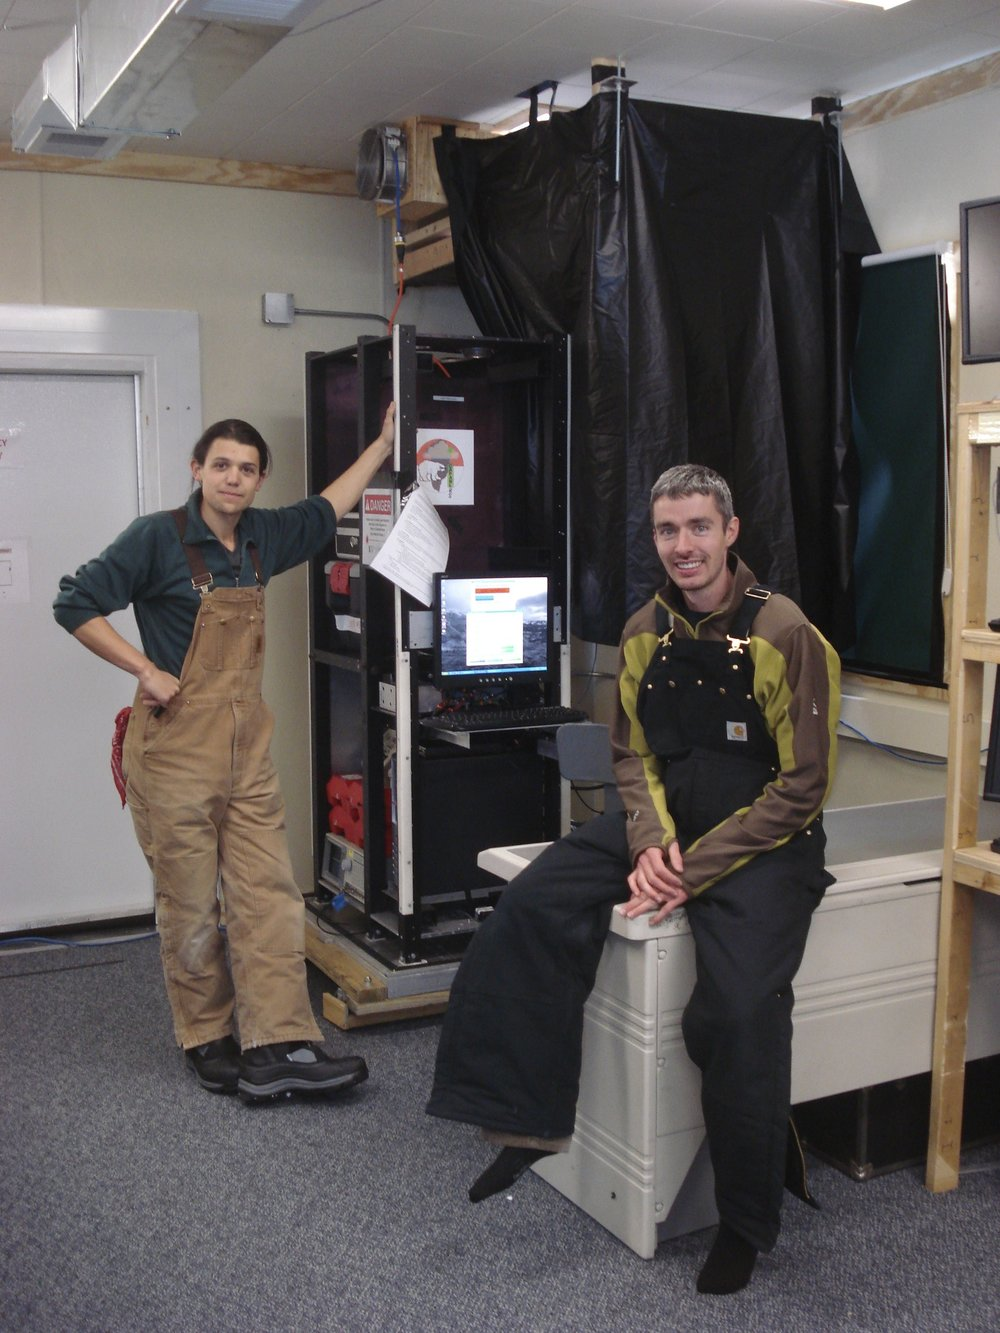 Neely (left) and his student Robert Stillwell (right) next to the LiDAR system, which is stowed behind the black safety curtain. Credit: Ryan Neely